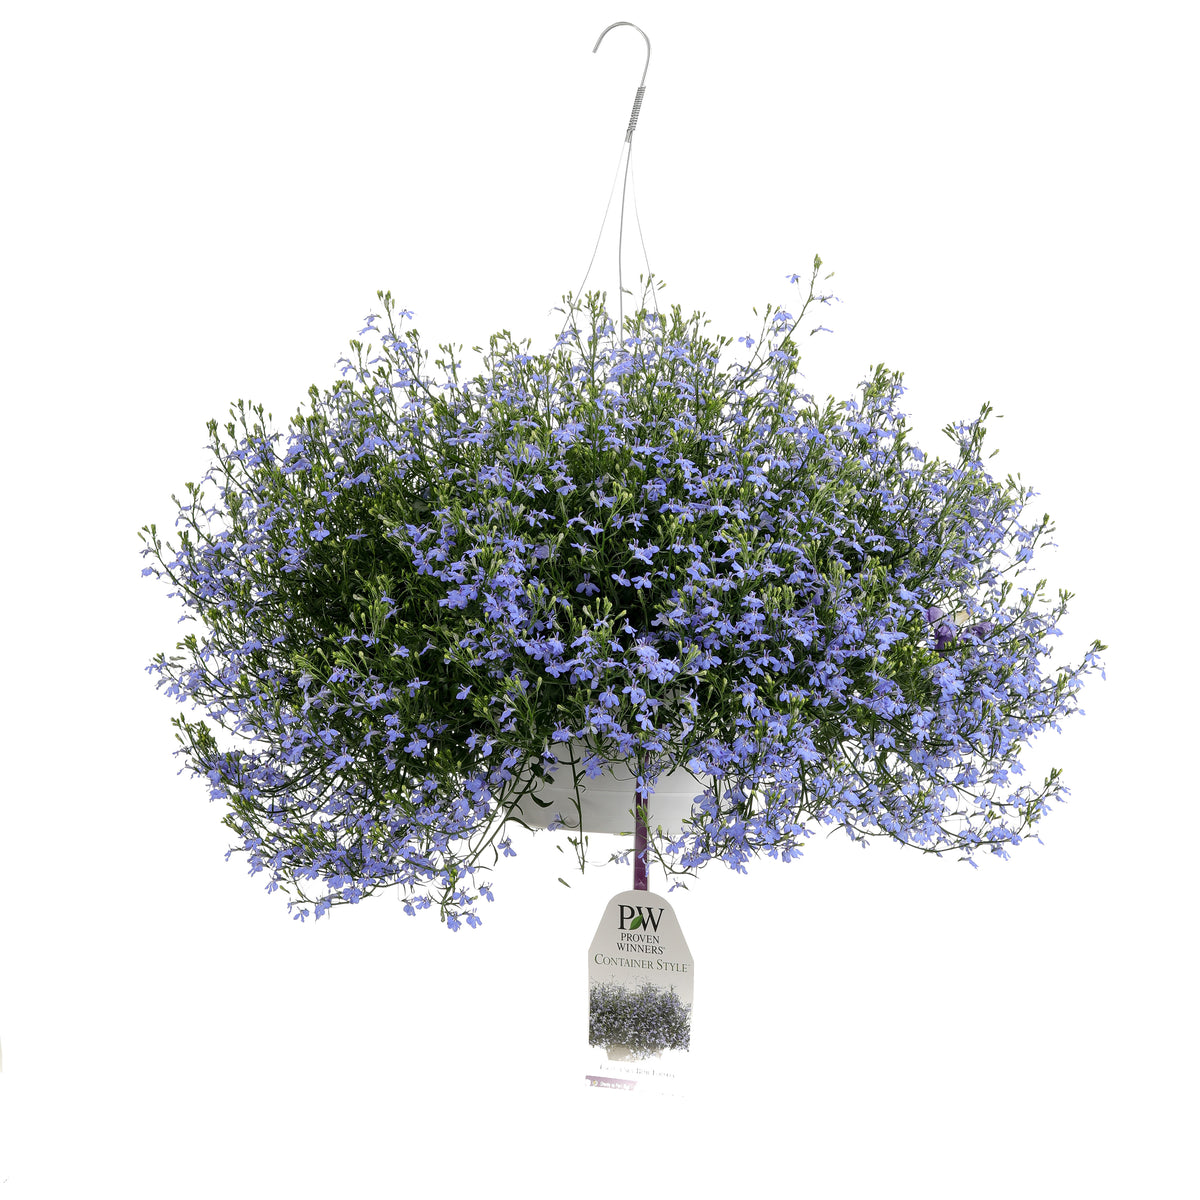 Patio Plants|Lobelia - Laguna Sky Blue Mono Hanging Basket 1